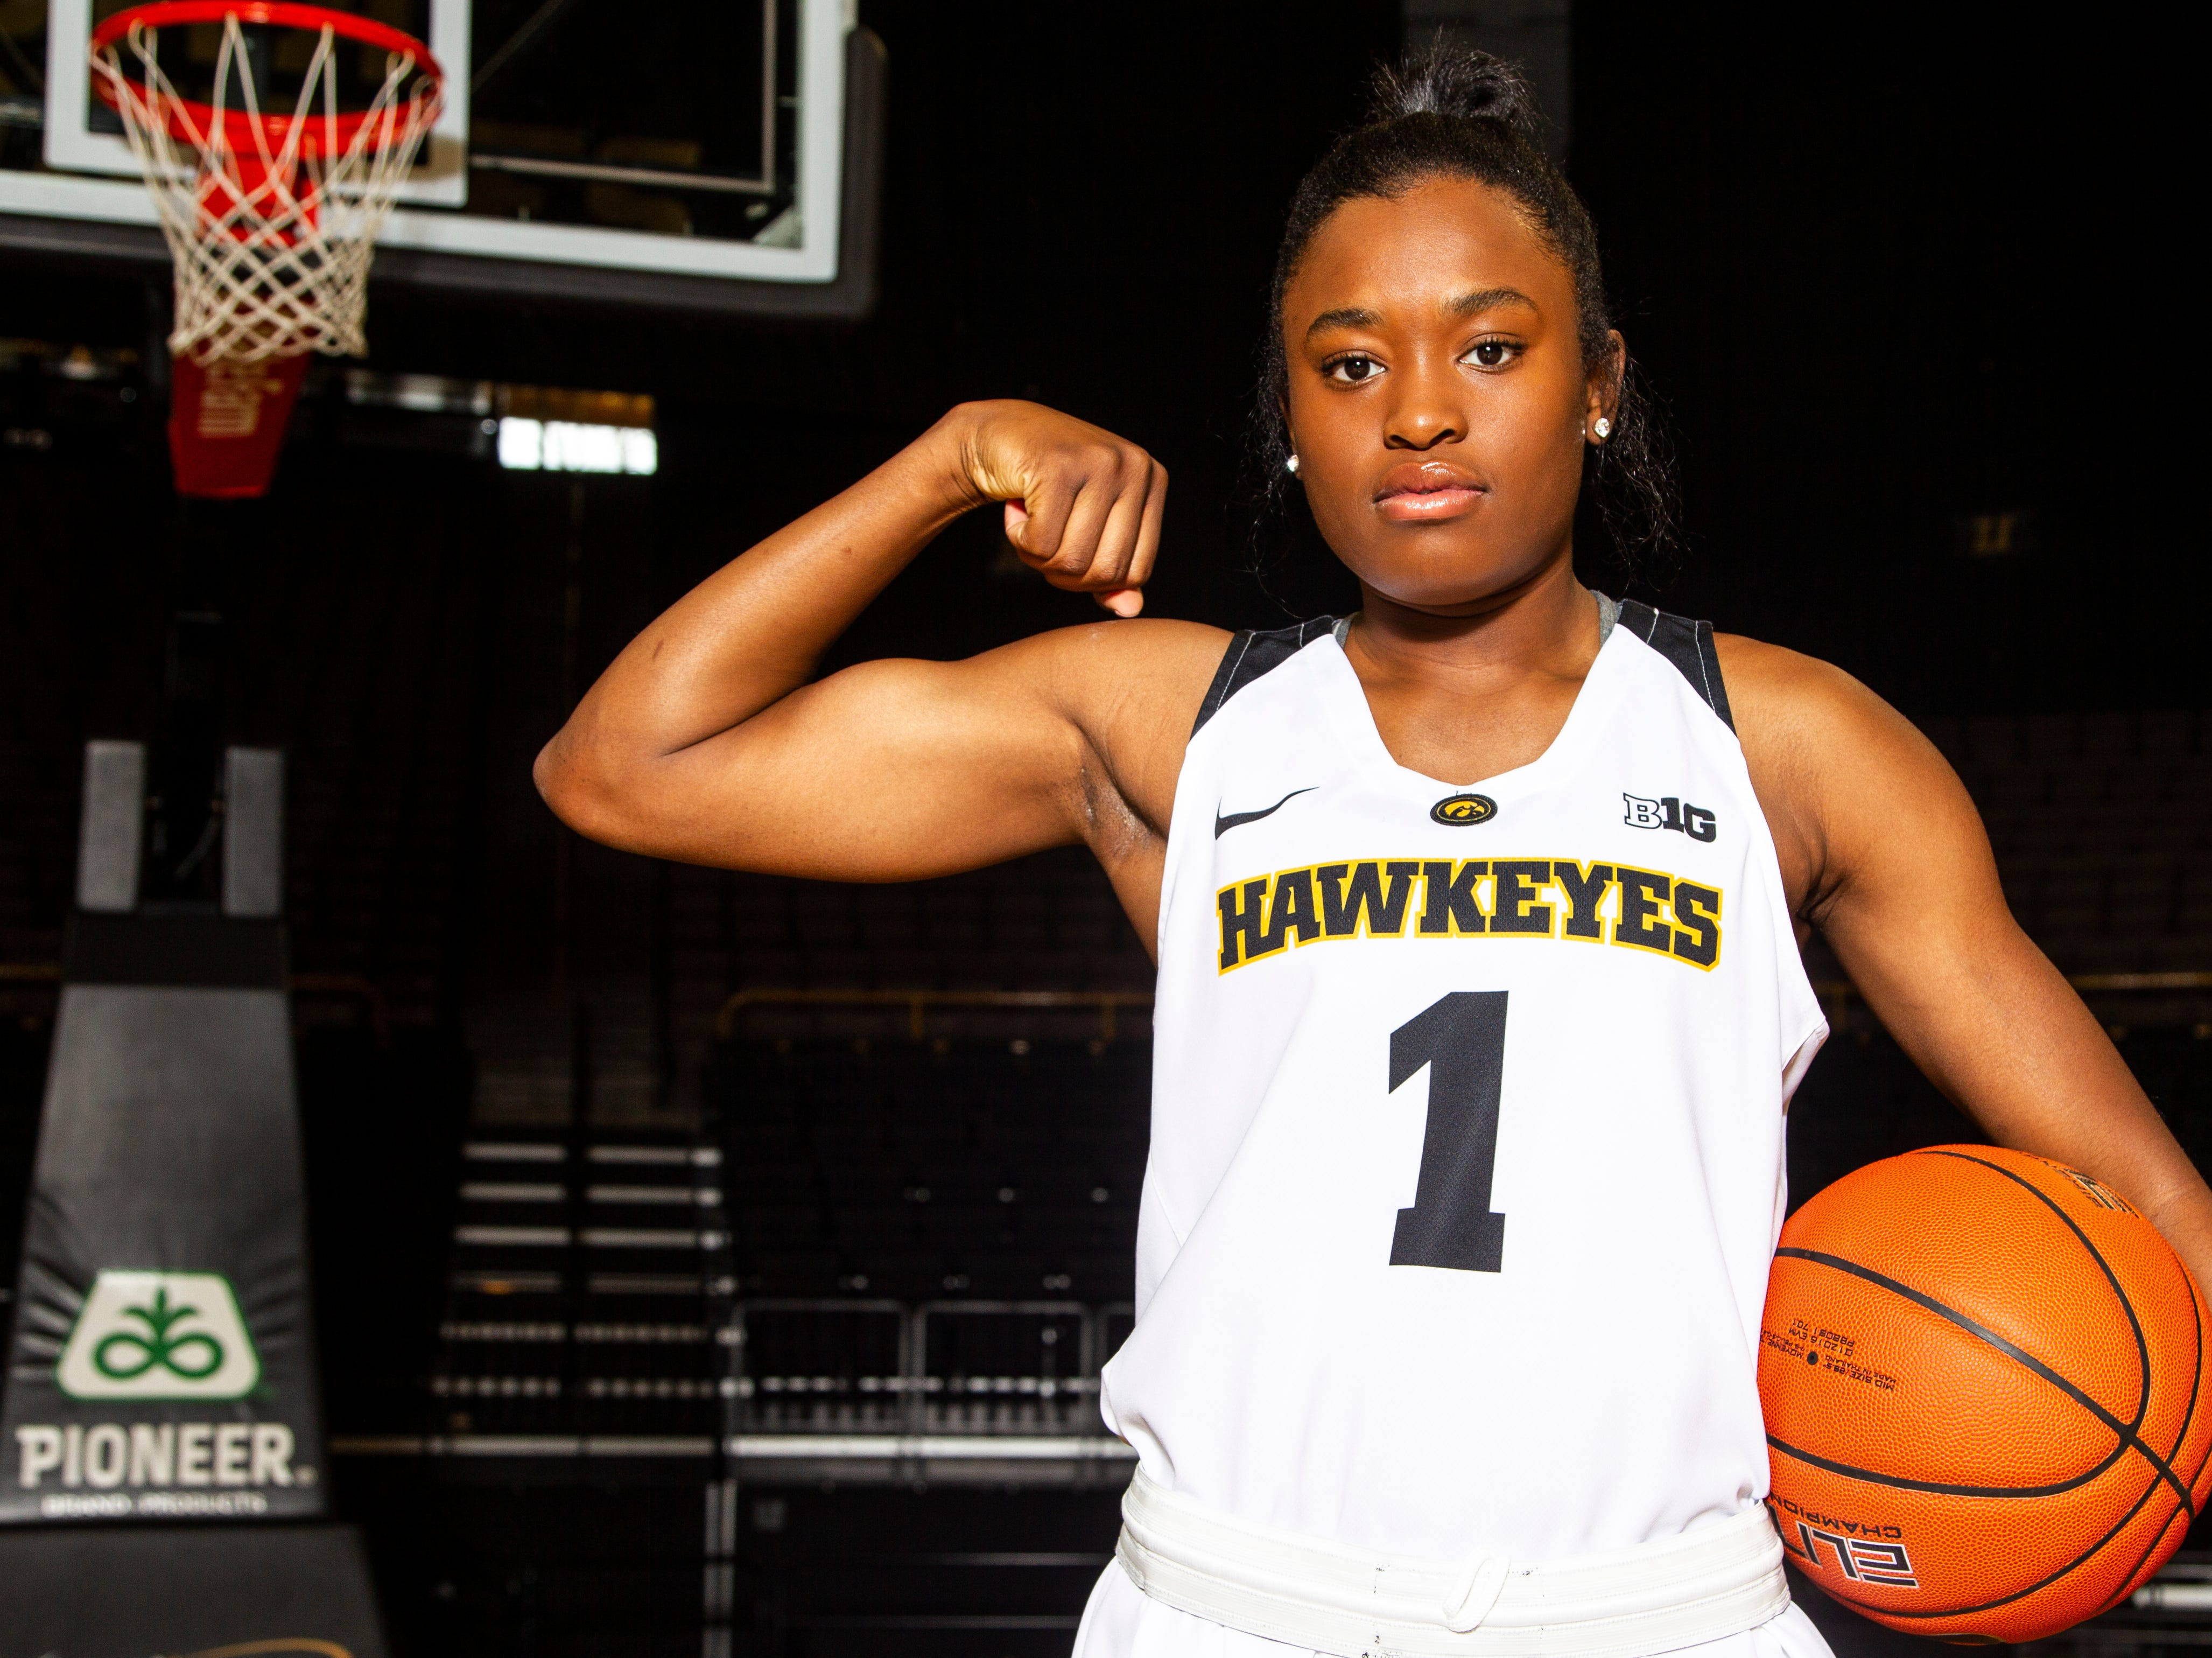 Iowa guard Tomi Taiwo (1) poses for a portrait during Hawkeye women's basketball media day on Wednesday, Oct. 31, 2018, at Carver-Hawkeye Arena in Iowa City.